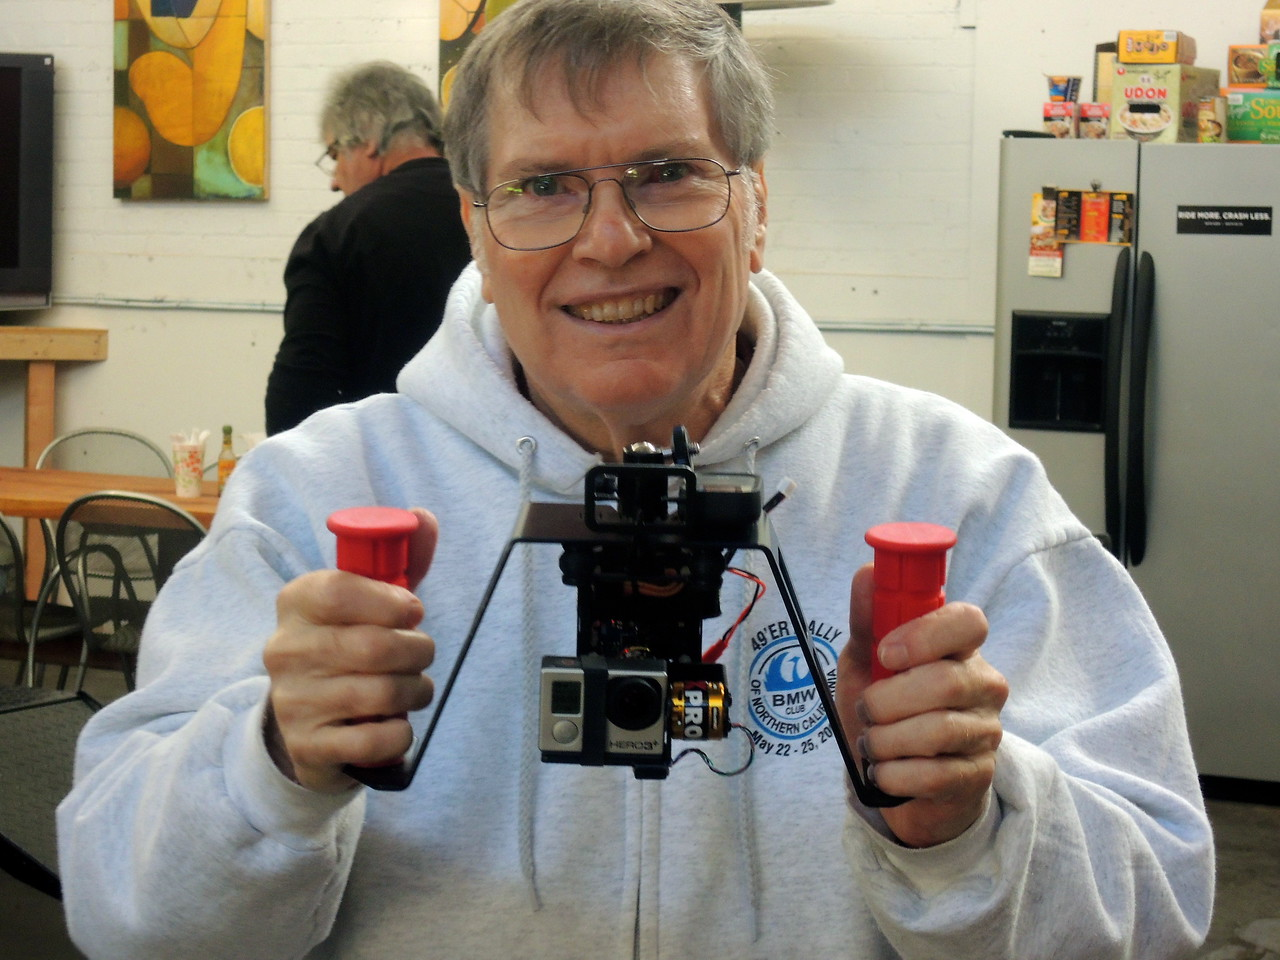 Rick Klain and his spiffy  X-Box controller converted into a gyroscope for his video camera.